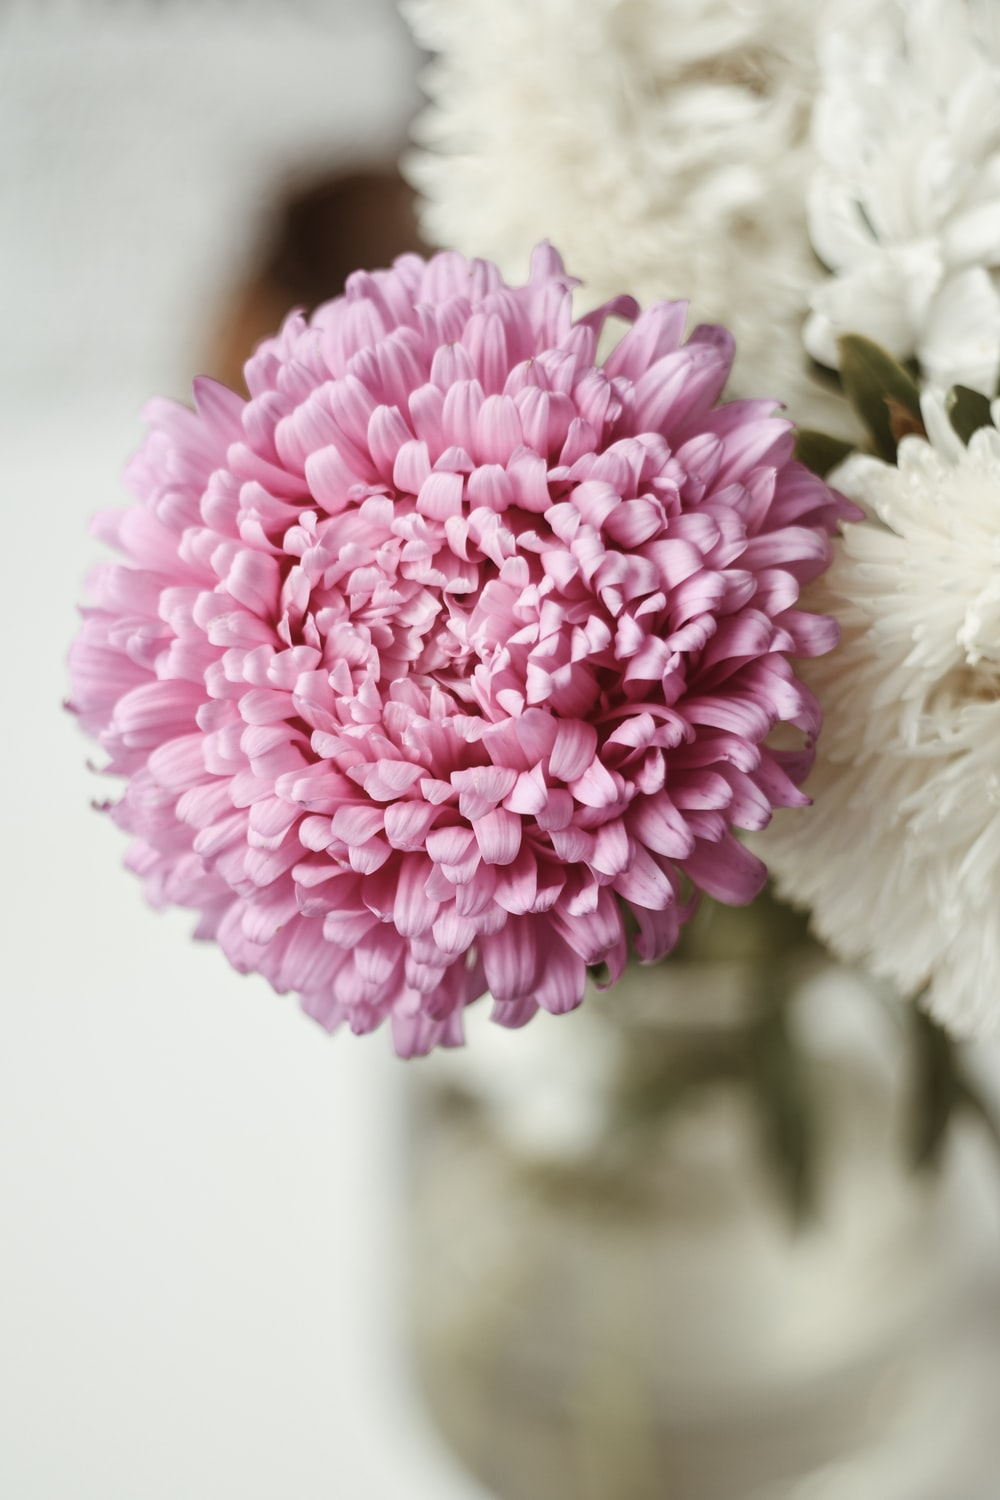 blooming pink and white flowers in vase